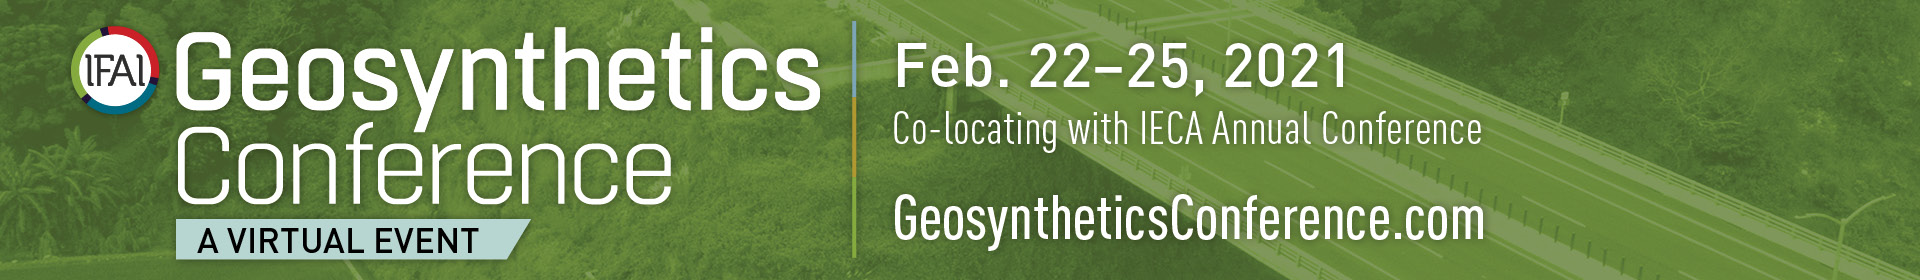 Geosynthetics Conference 2021 Event Banner